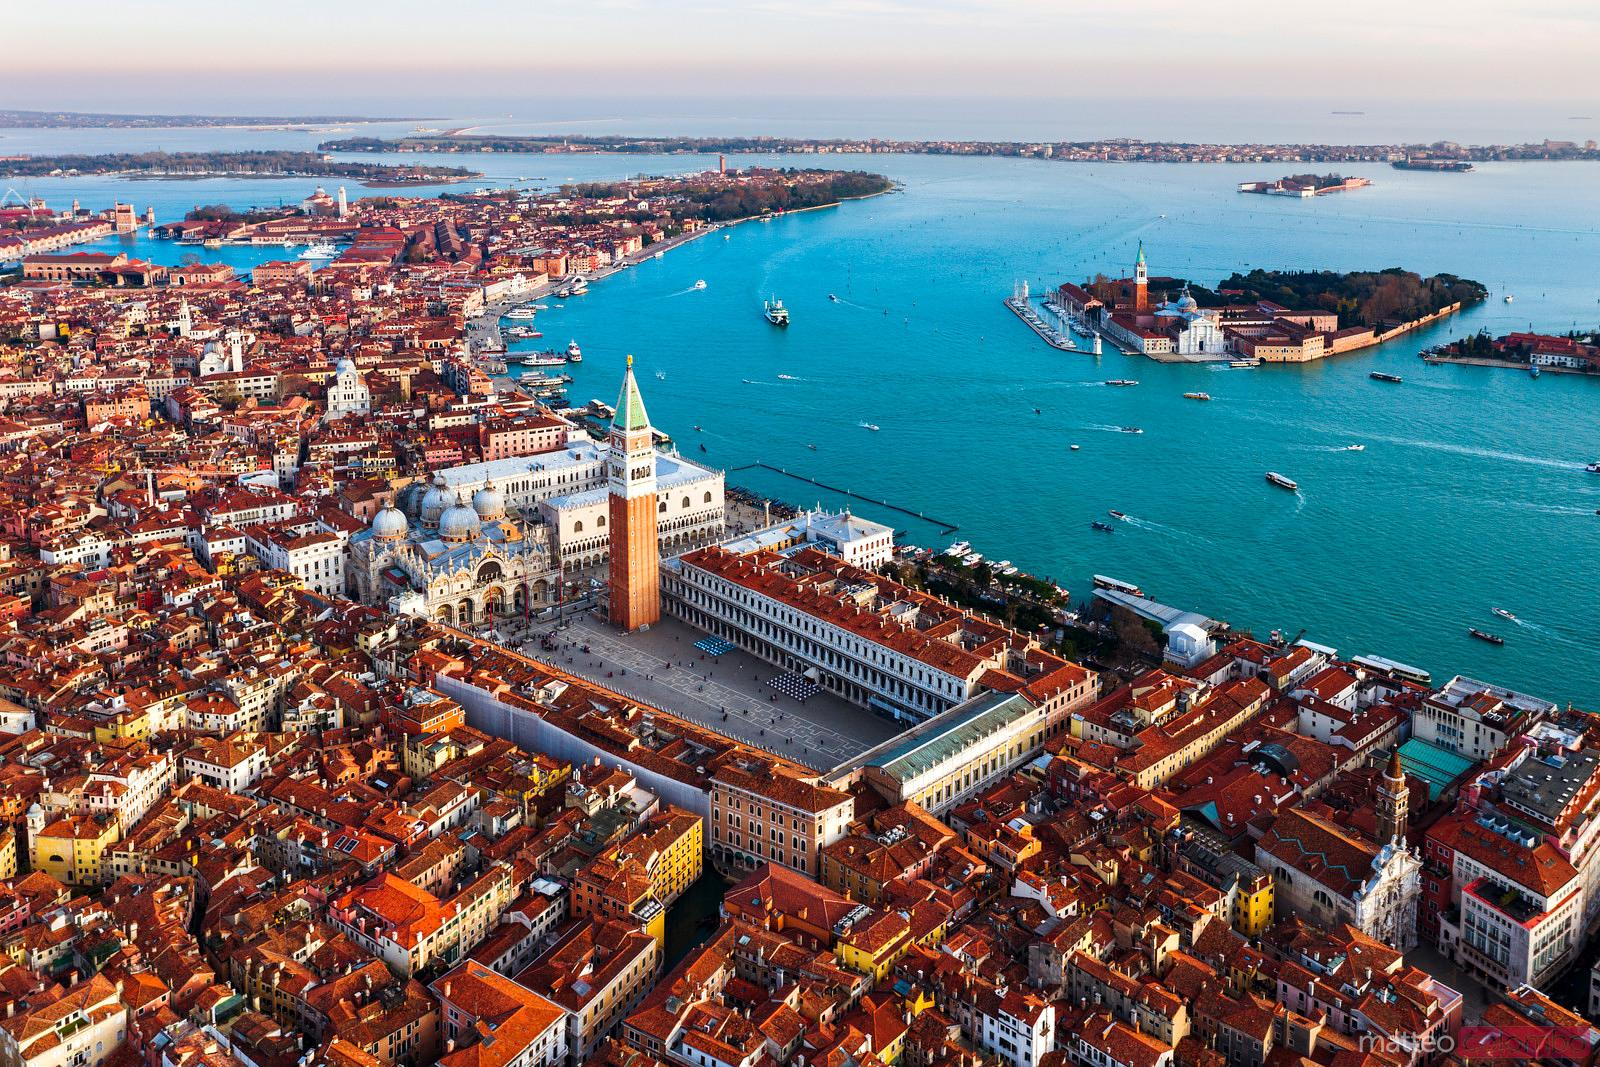 Aerial of St Mark's square and San Giorgio church, Venice, Italy